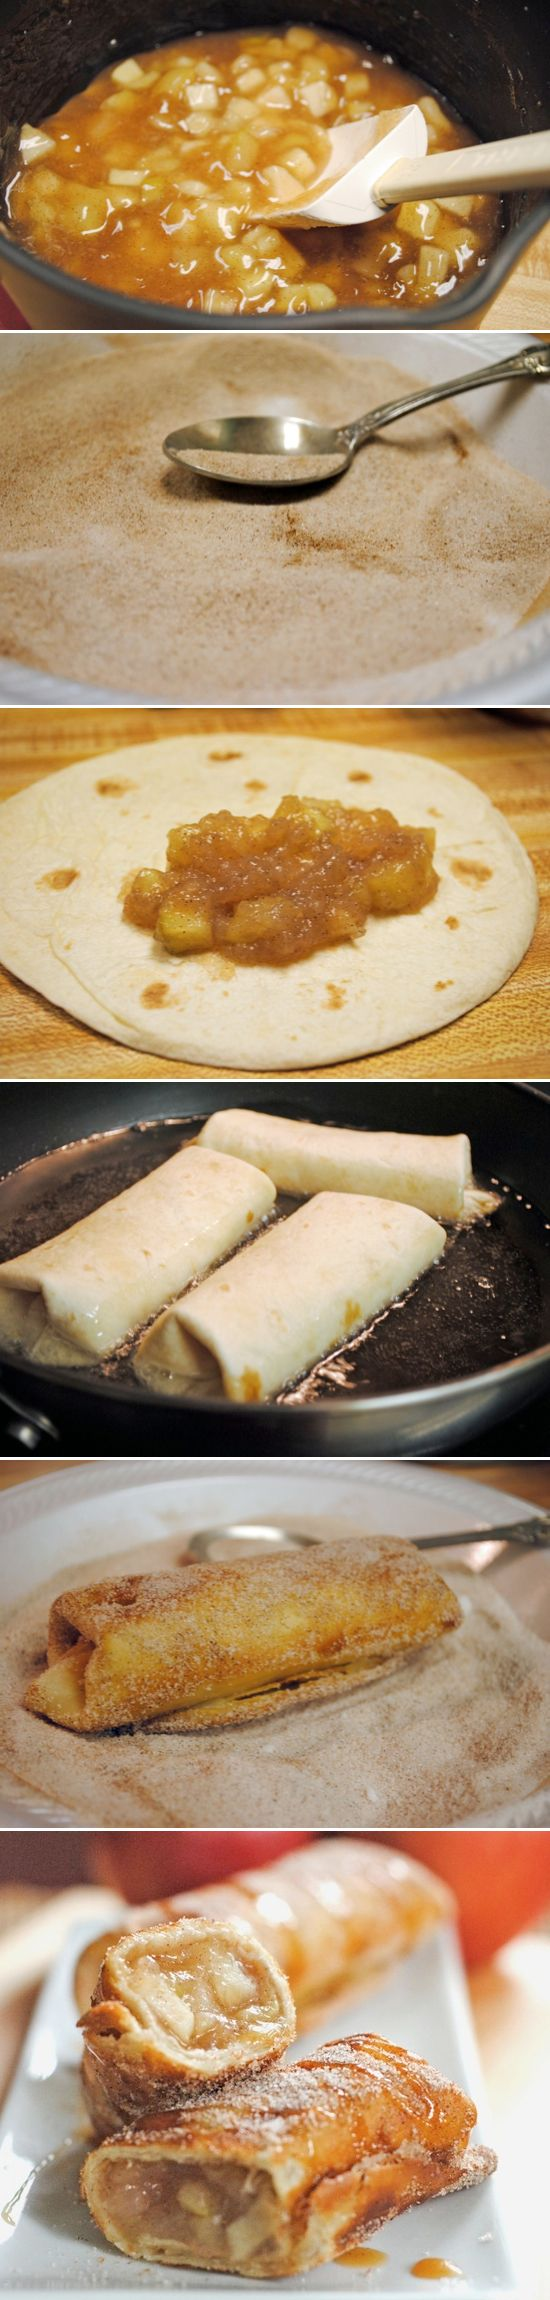 apple cinnamon chimichangas.